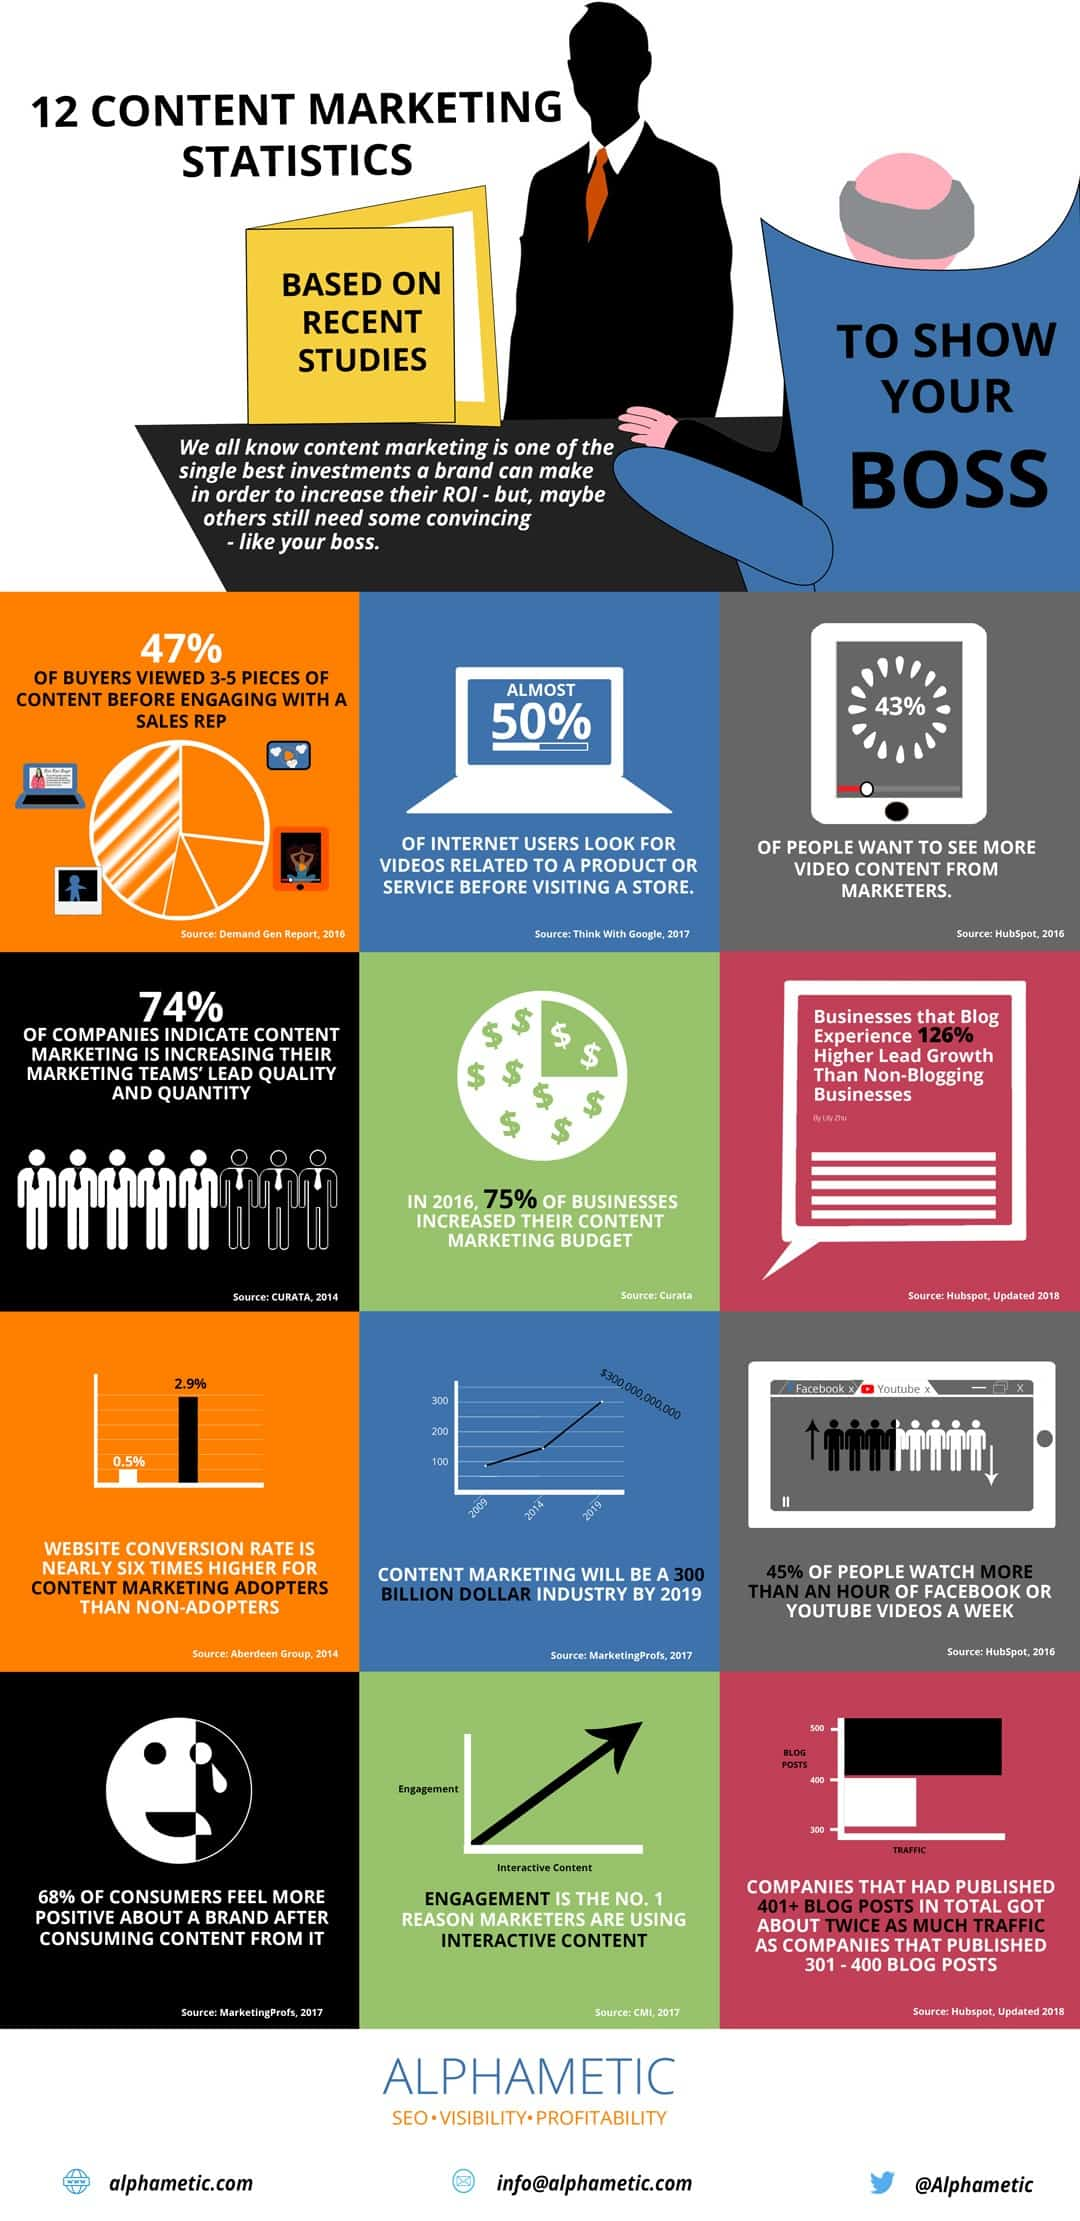 12 Content Marketing Statistics Based on Recent Studies Infographic